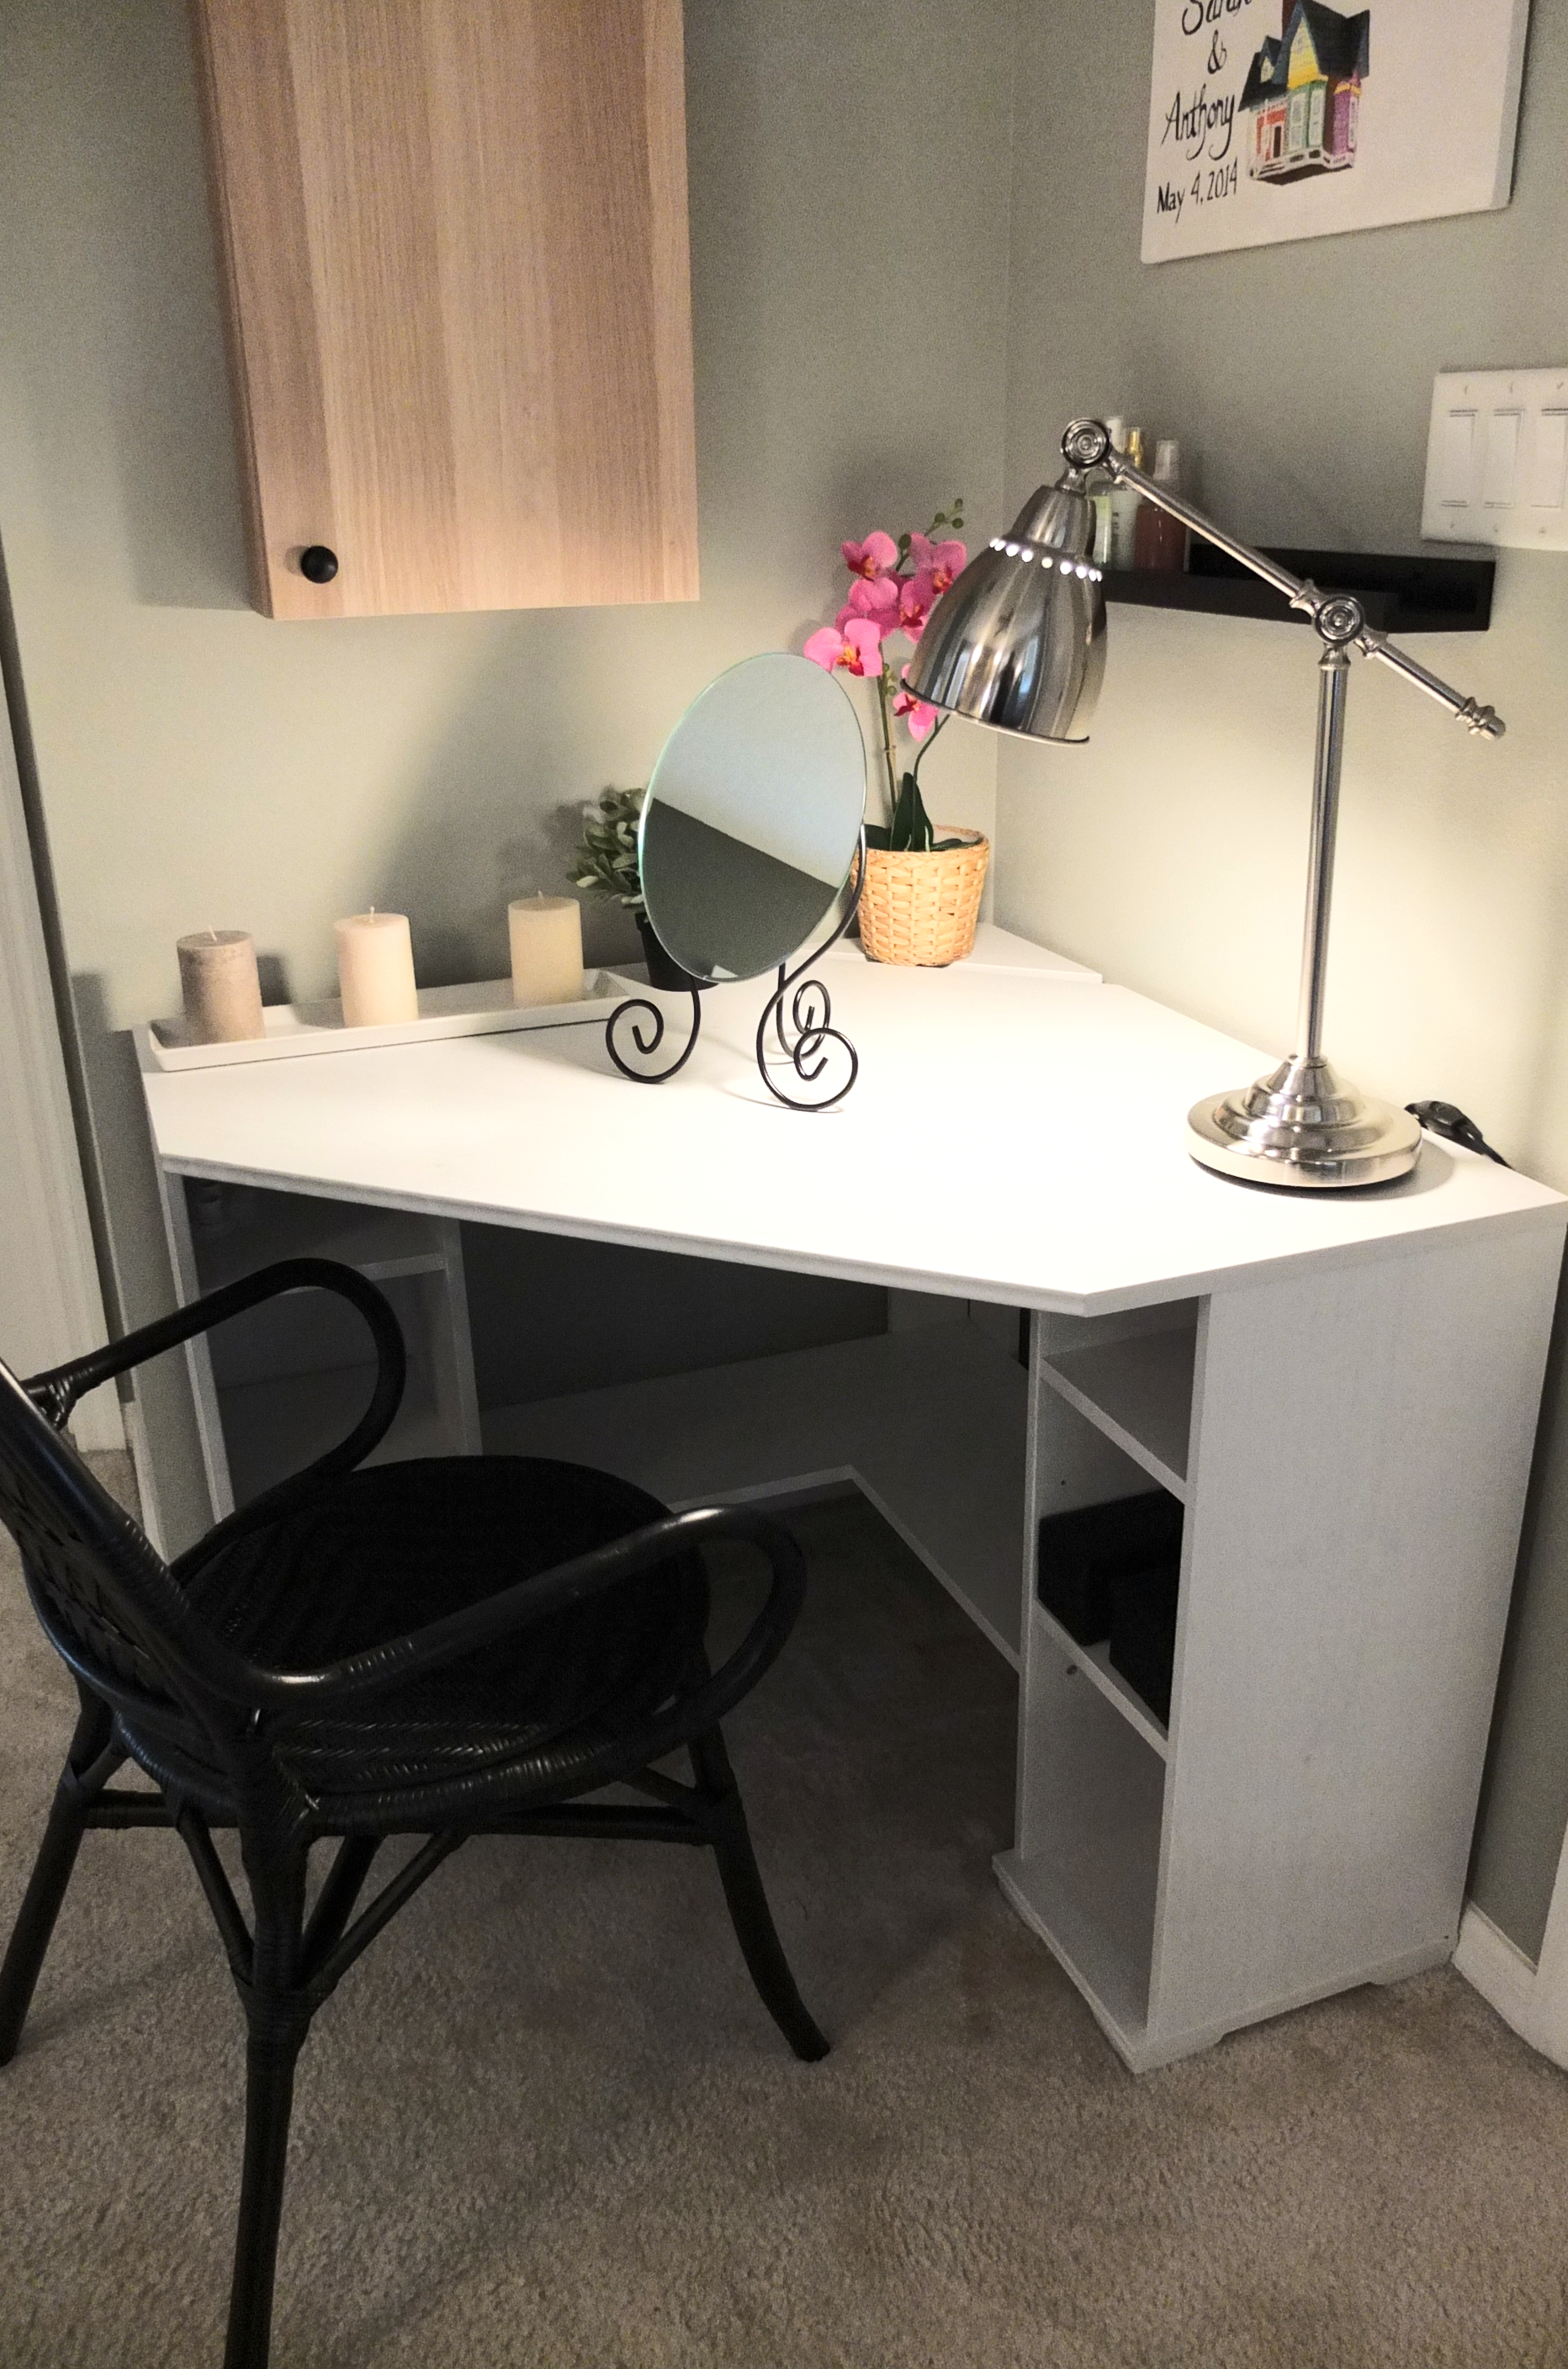 The borgsjÖ corner desk tucks neatly in a corner with enough top